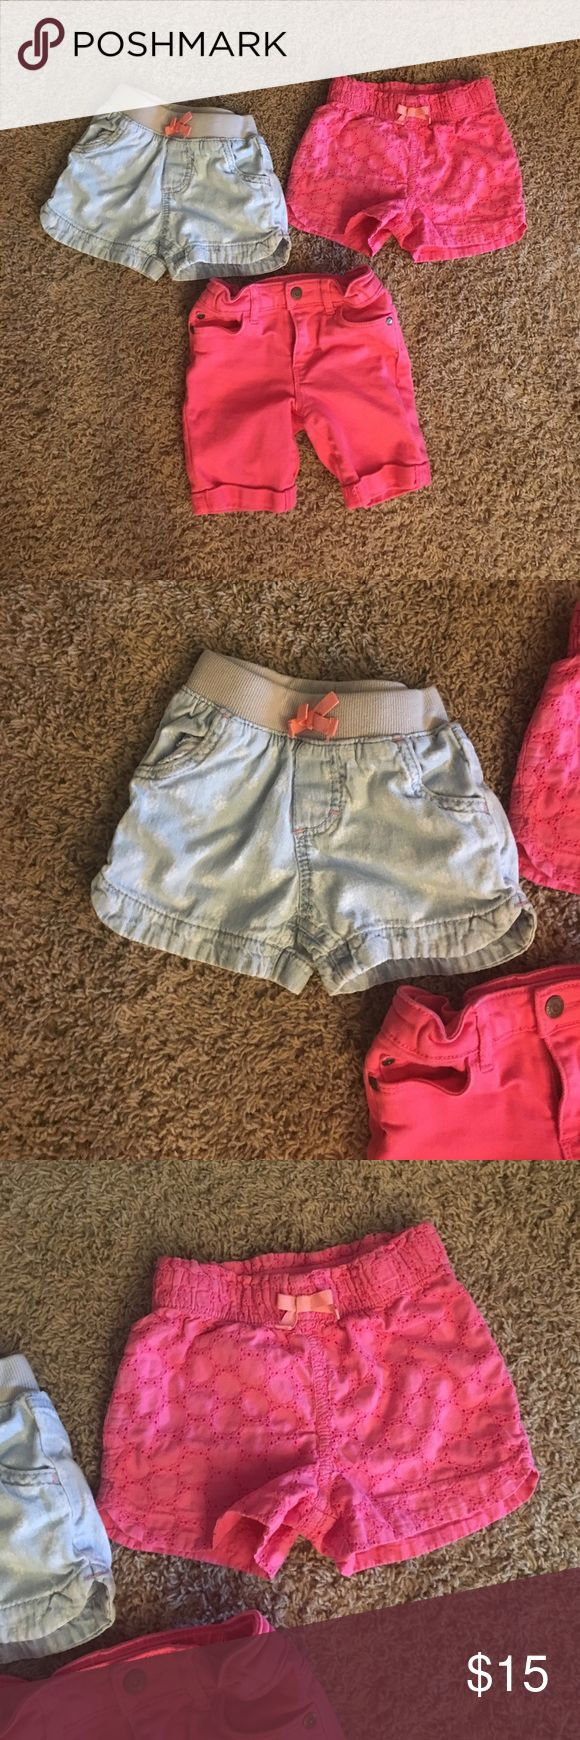 4T shorts bundle 3 pairs of shorts all size 4 Toddler 1 pink denim 2 Cherokee brand and 1 Arizona jeans co. GUC the pink denim was only worn once the others have had more use Bottoms Shorts